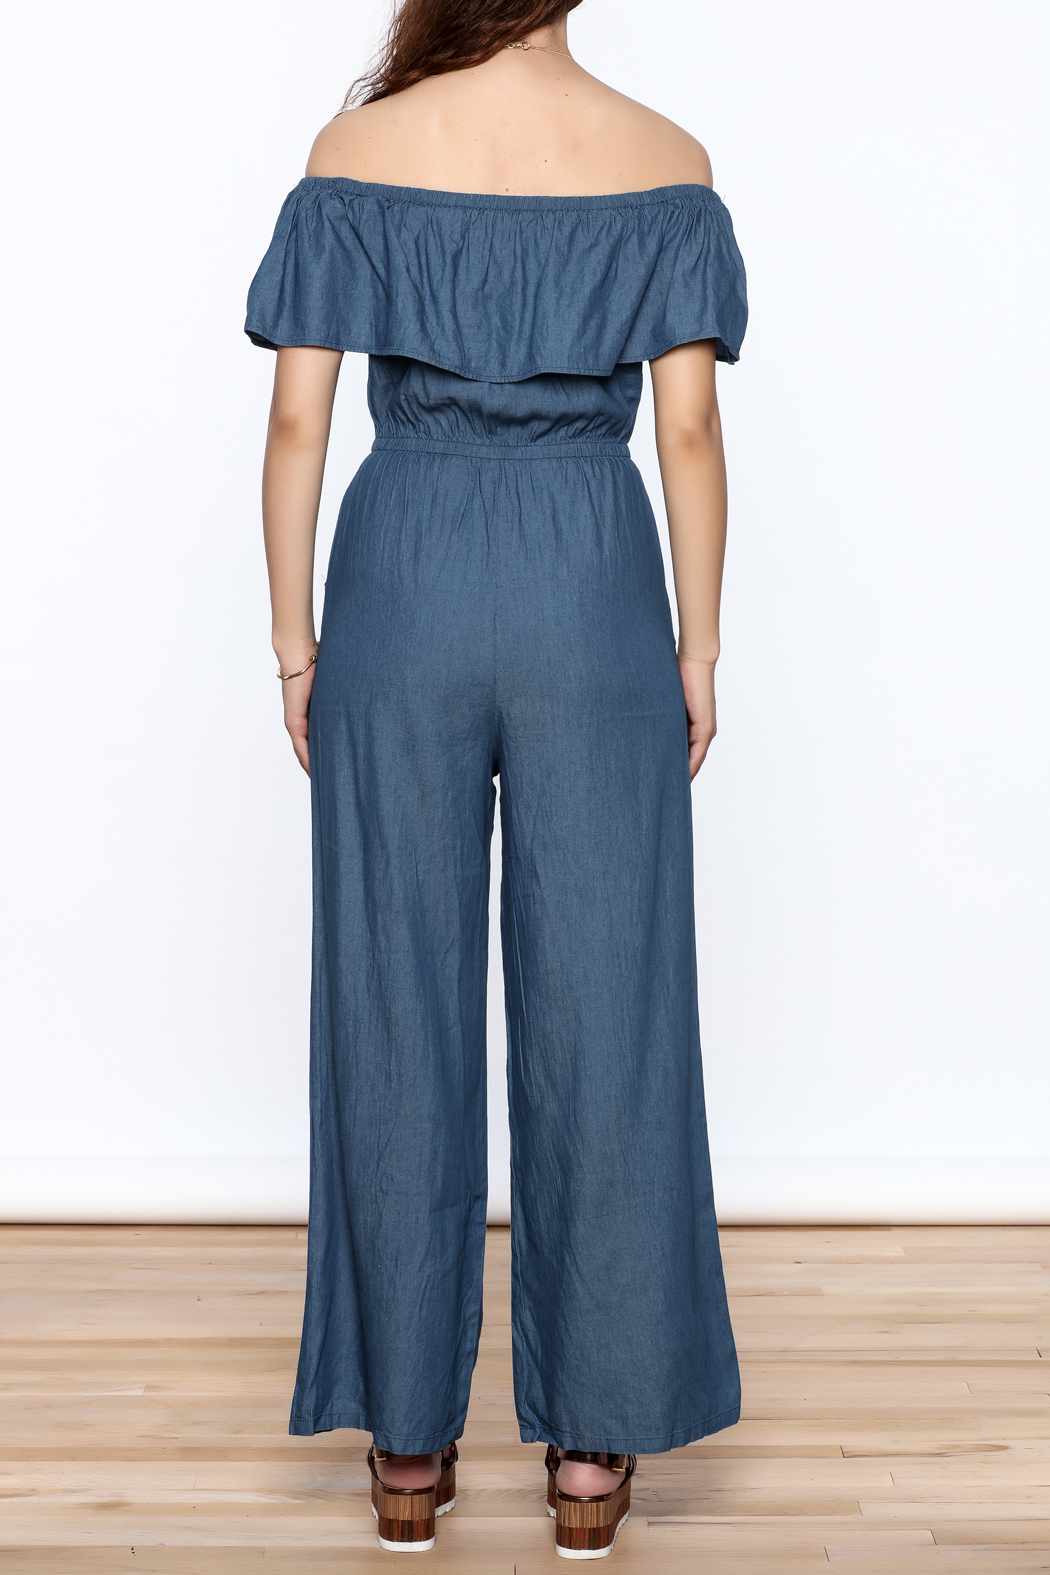 Jealous Tomato Denim Off Shoulder Jumpsuit - Back Cropped Image